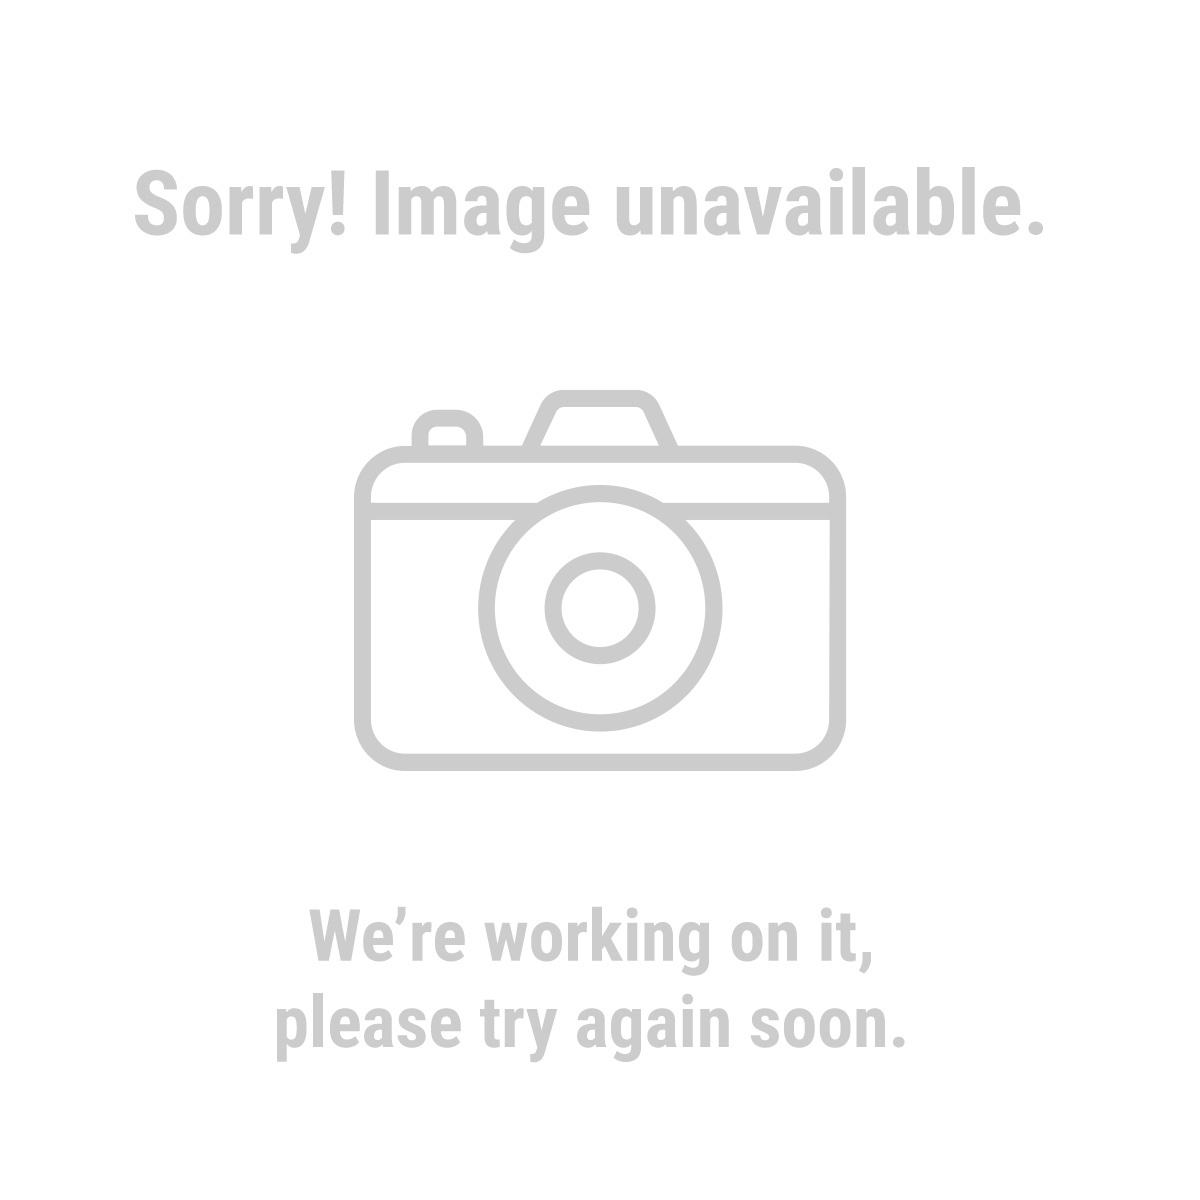 Pittsburgh 94725 36 Piece SAE/Metric Hex Key Set